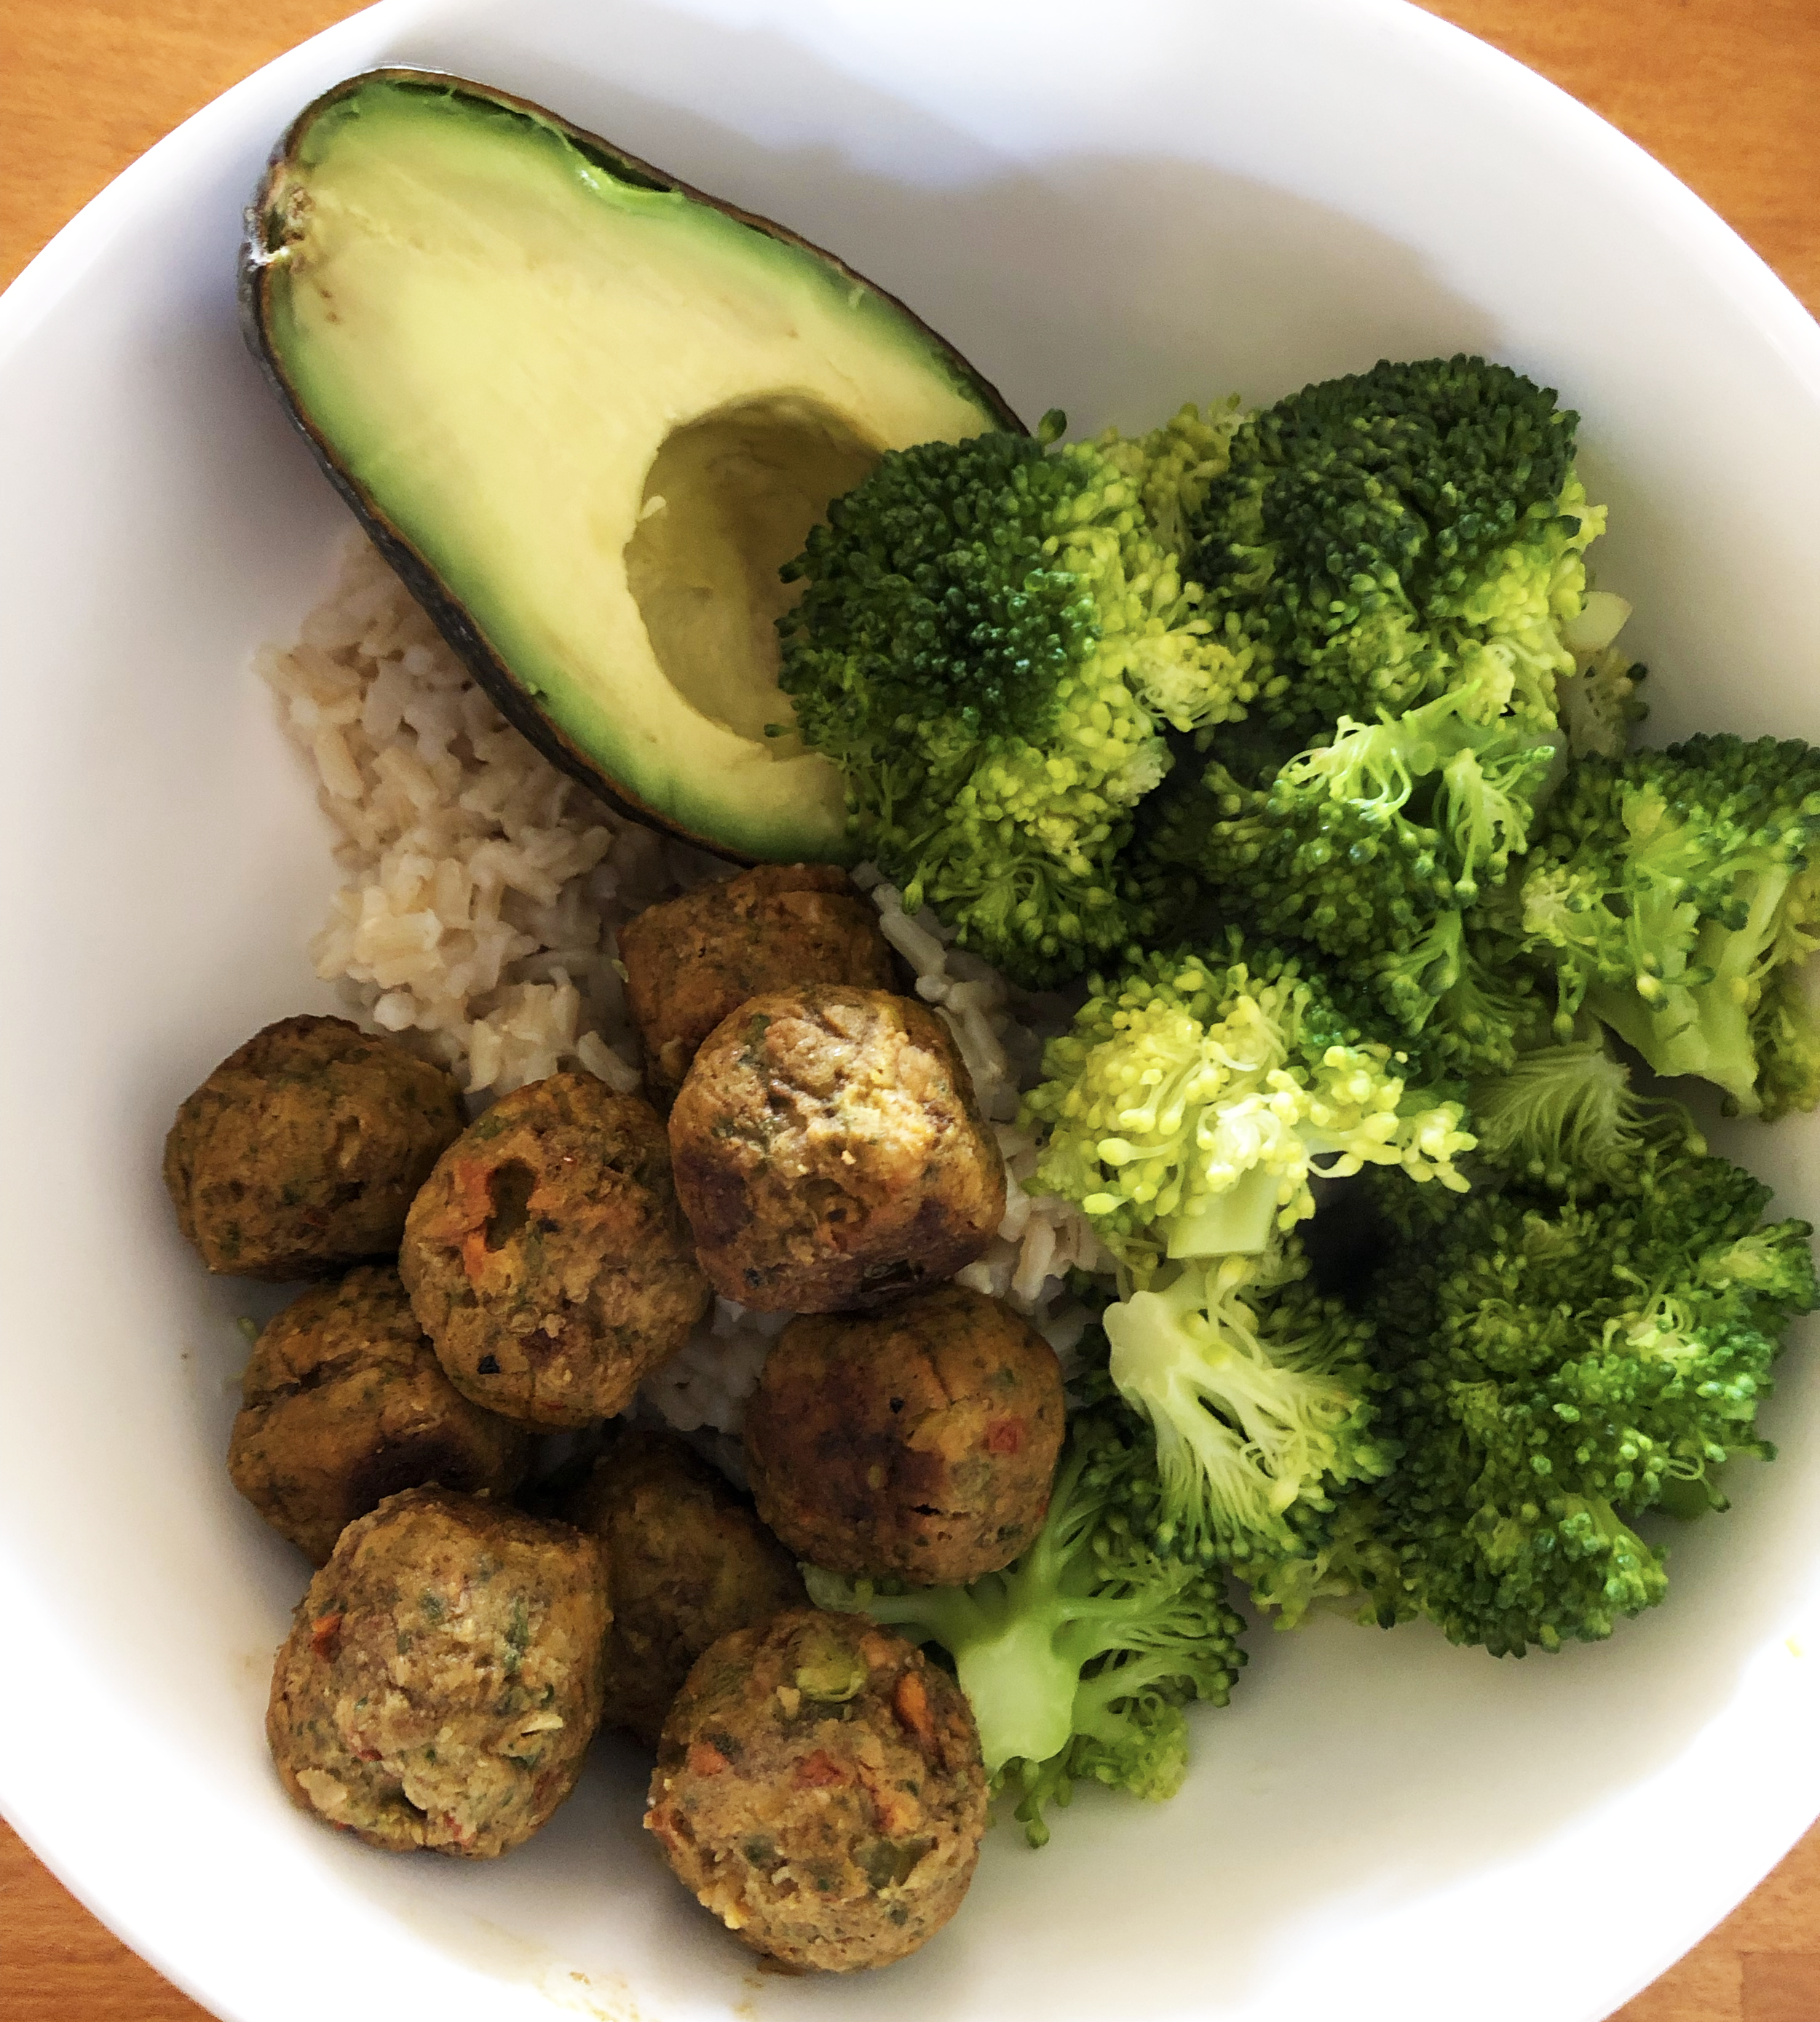 Lunch: Veggie balls, broccoli, avocado and brown rice - I LOVE VEGGIE BALLS. Do yourself a favour, go to IKEA and get yourself some of their veggie balls. They are amazing. Also, hej IKEA! If you would like to sponsor, I'd be down for a lifetime supply of veggie balls and a PAX wardrobe. My people will contact your people.